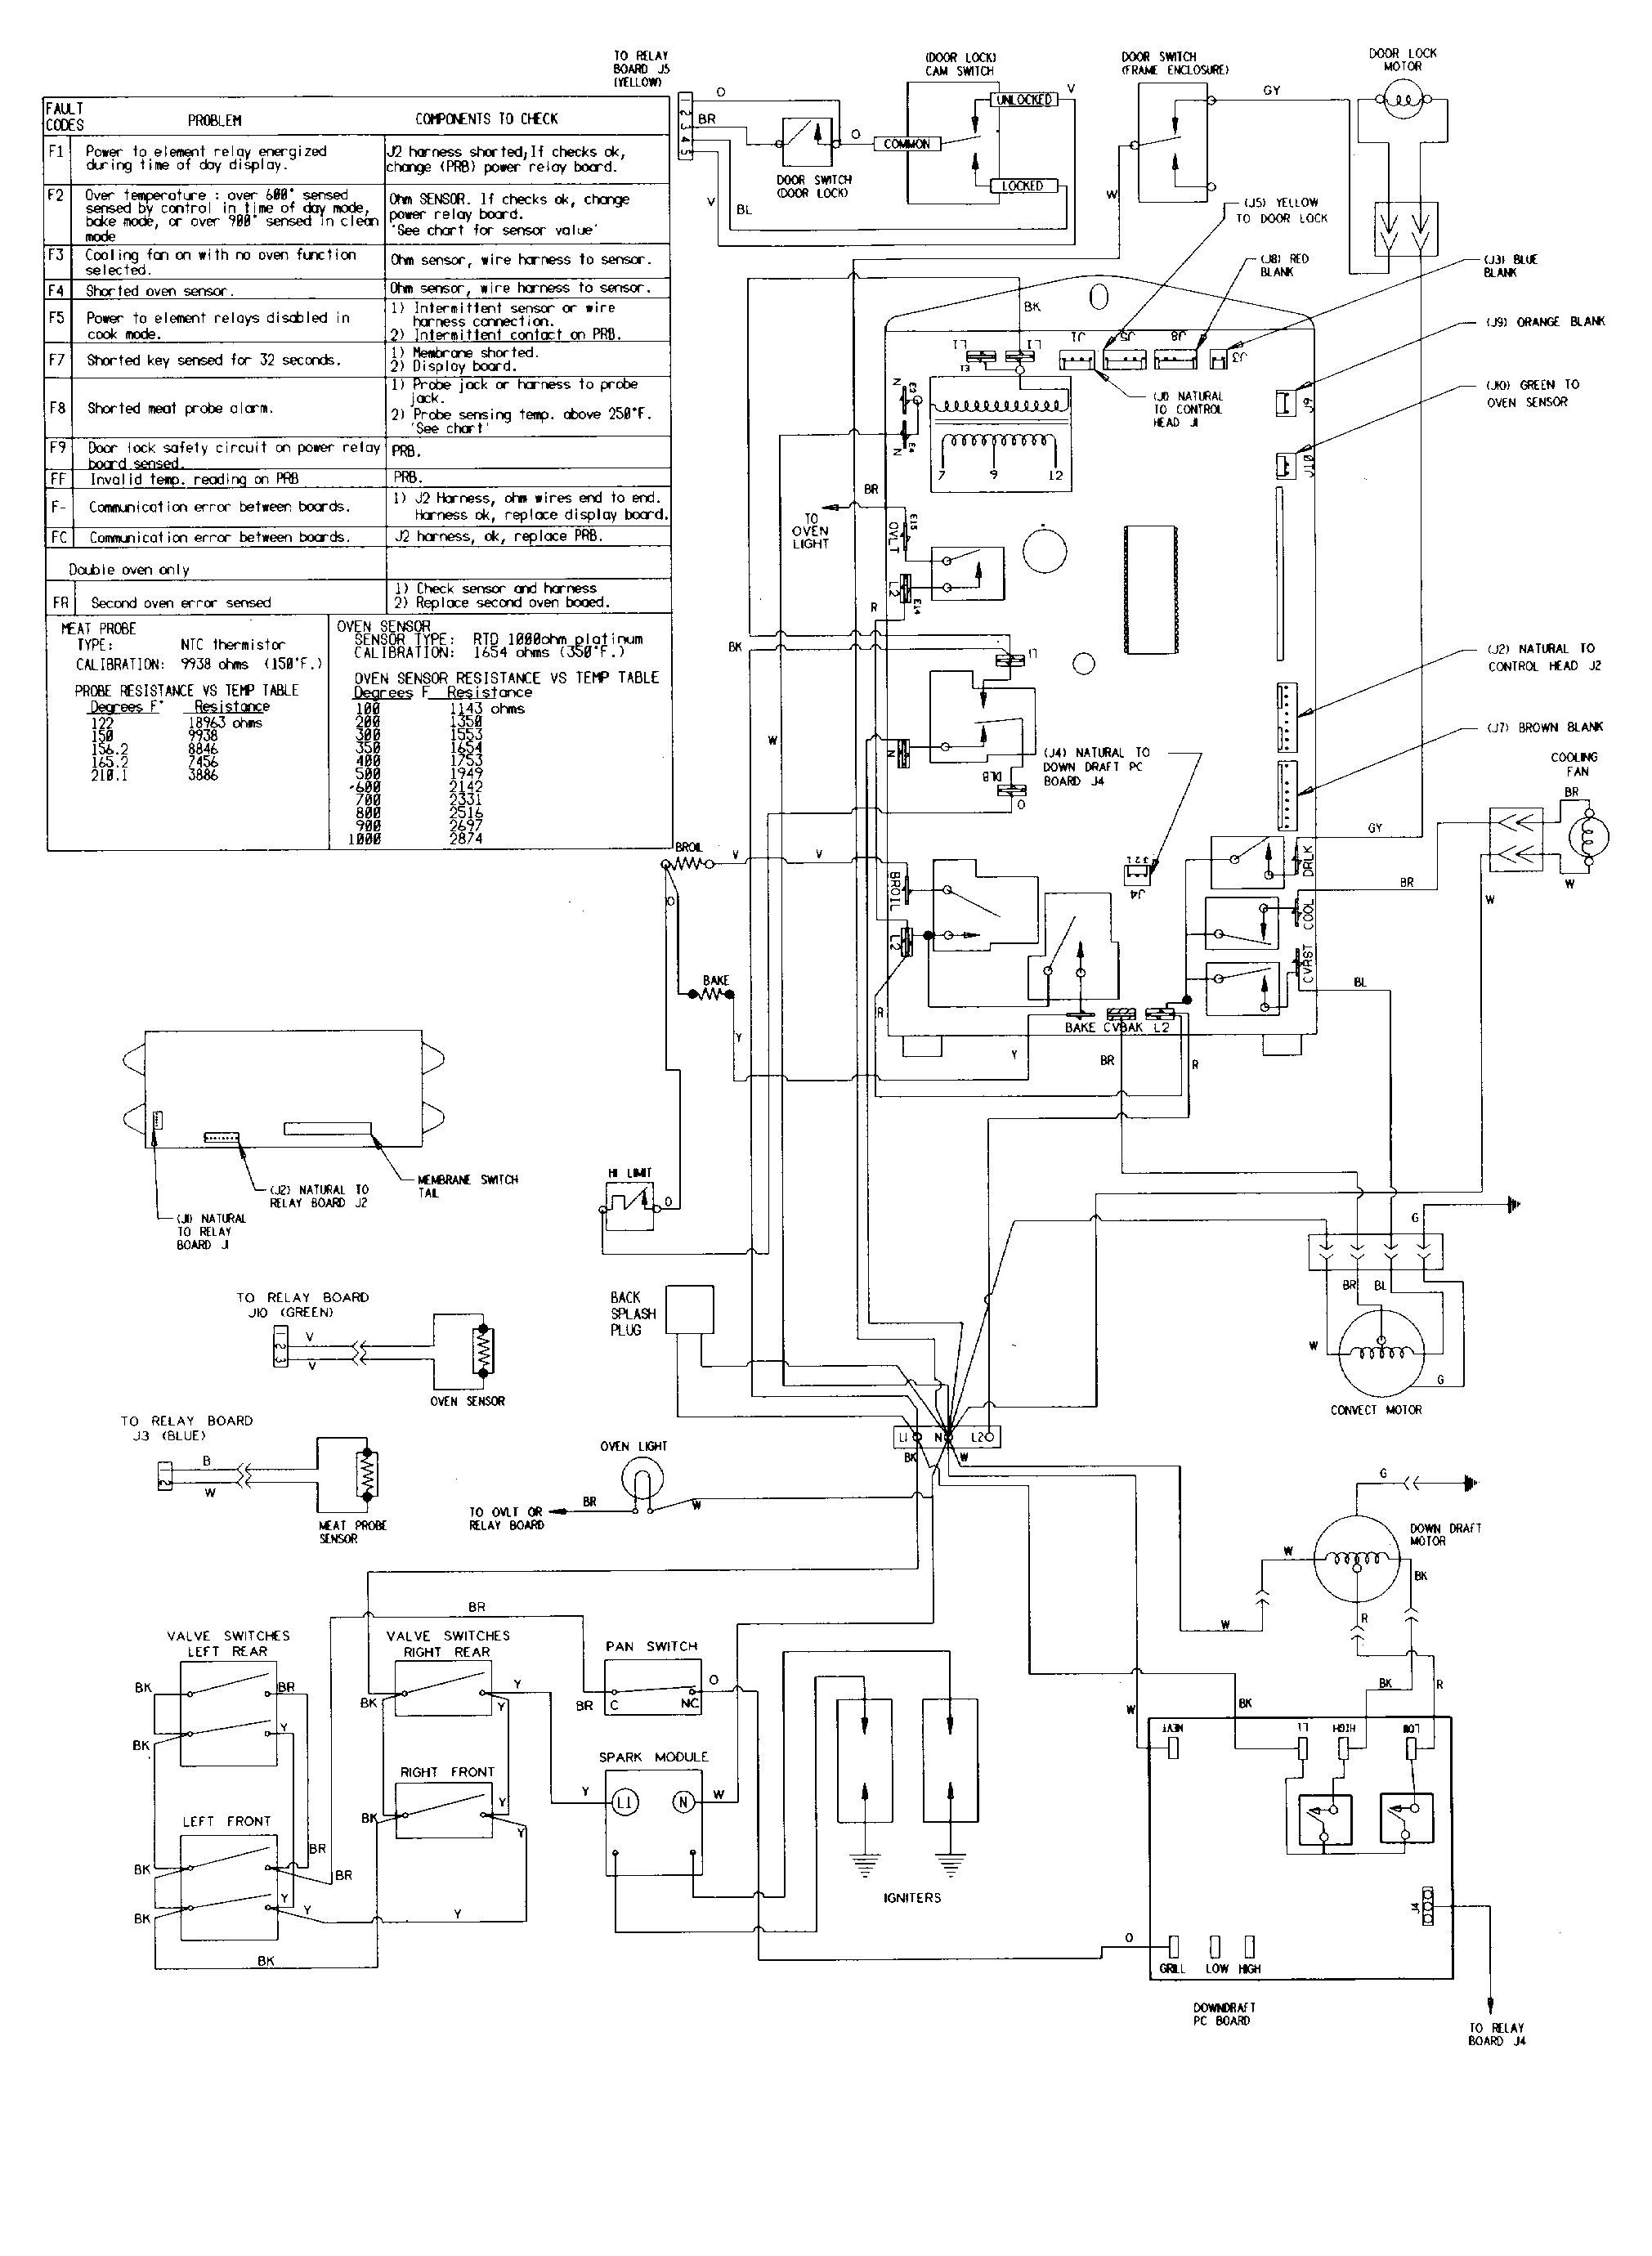 Electric Stove 220 Wiring Diagram For Fireplace Jenn Air Refrigerator Diagrams Clickjenn Svd48600b Gas Slide In Range Timer